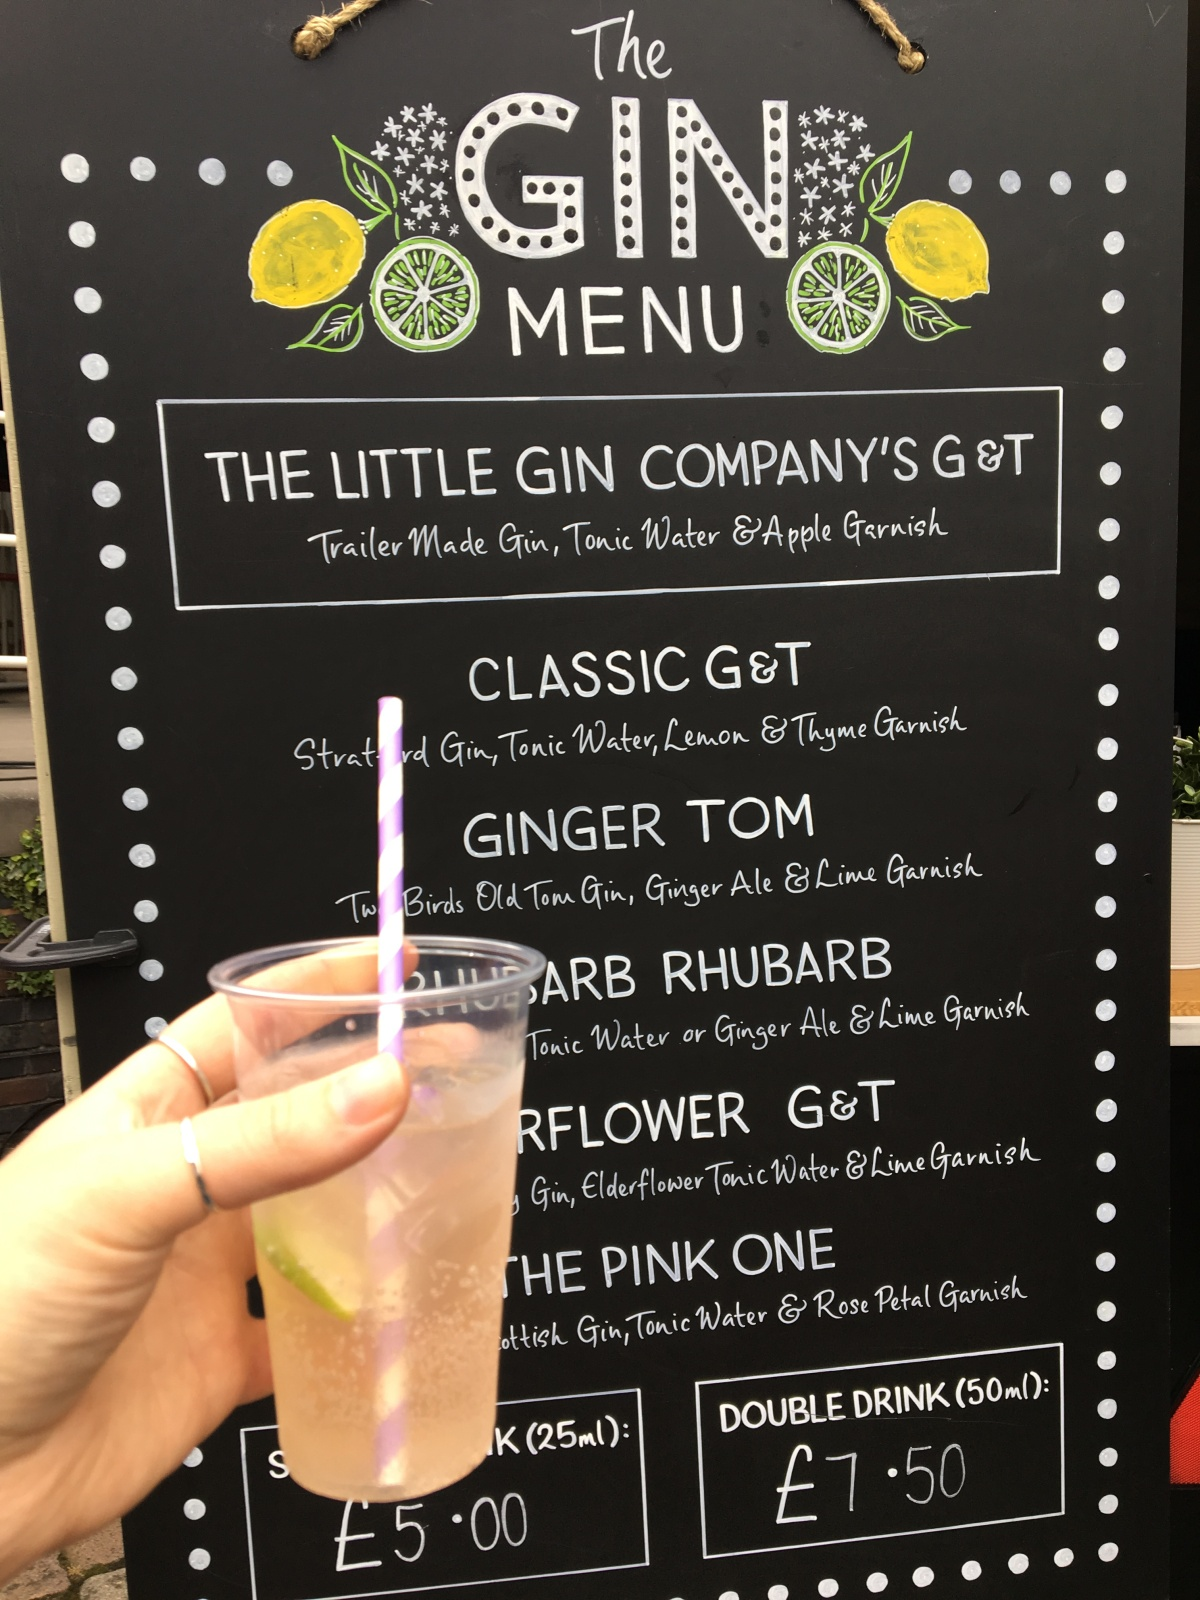 Gastronomic Gorman Birmingham Food Blog Birmingham Summer Market Little Gin Company